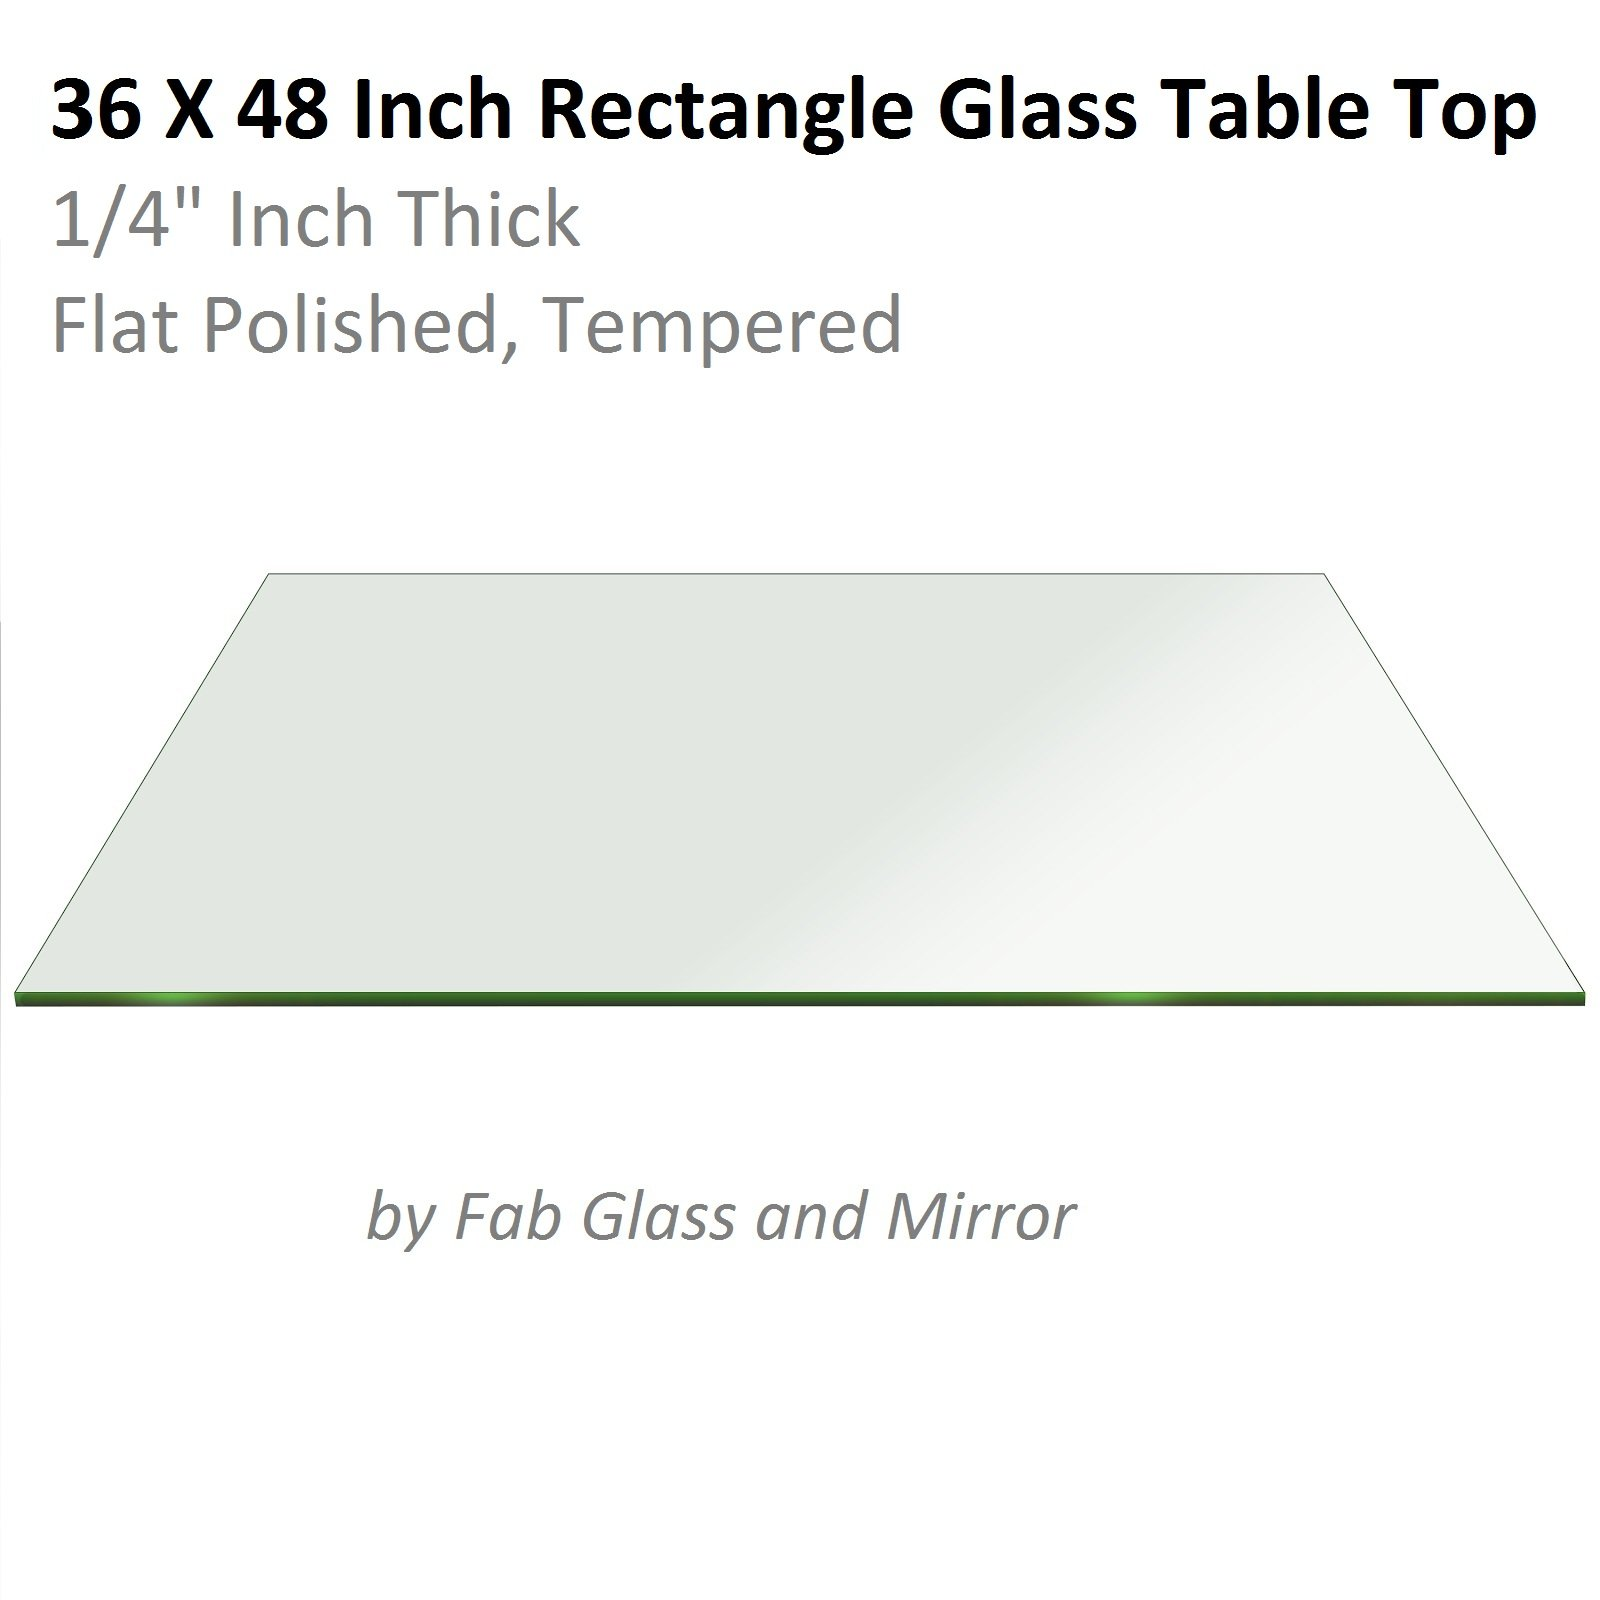 Fab Glass and Mirror 1/4'' Thick Flat Edge Tempered Eased Corners Rectangle Glass Table Top, 24'' X 48''